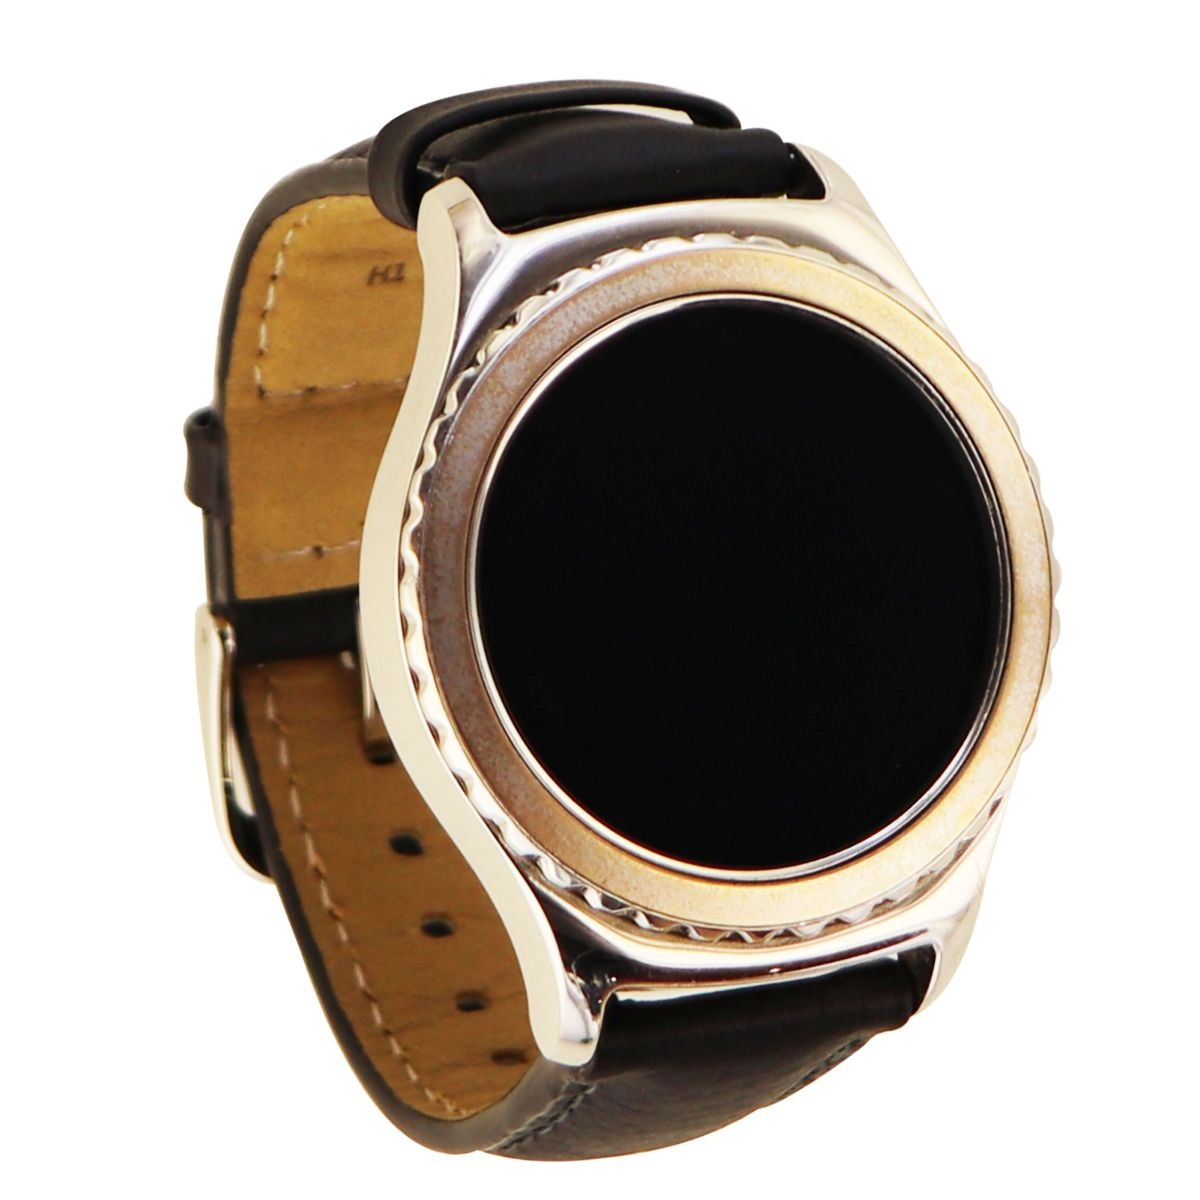 Samsung Gear S2 Classic Smartwatch R732 (40mm) Platinum Small Black Leather Band